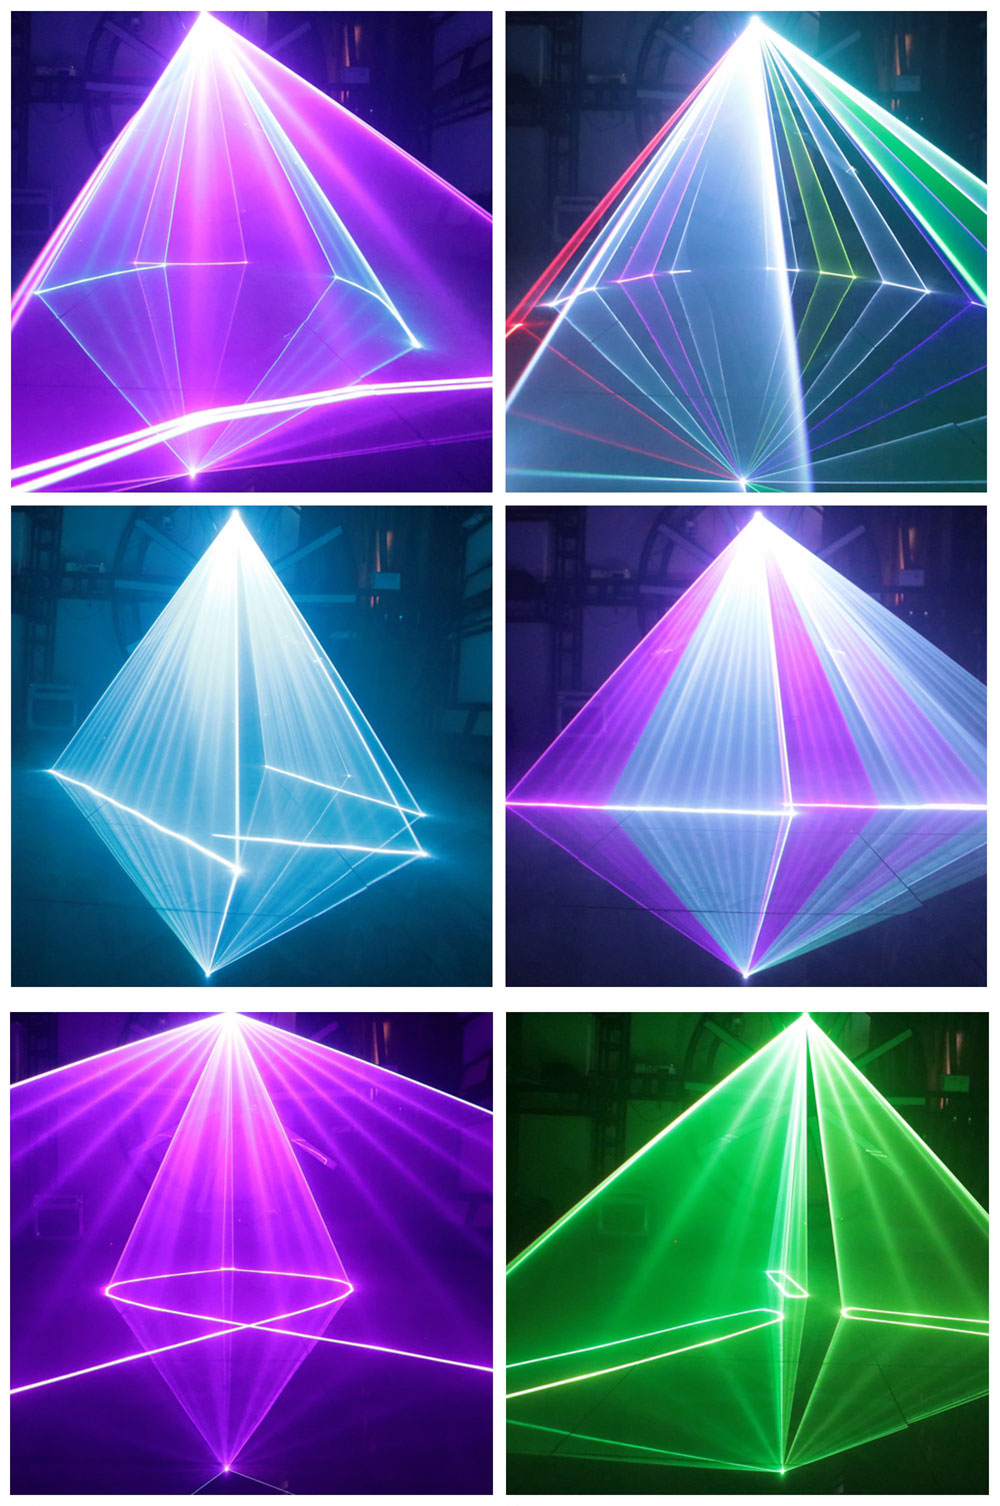 3W DJ Disco Stage Effect Light RGB 3IN1 Laser Projector Light Beam Spot 2IN1 Laser Scans DMX512 Music Control Bar Party Show